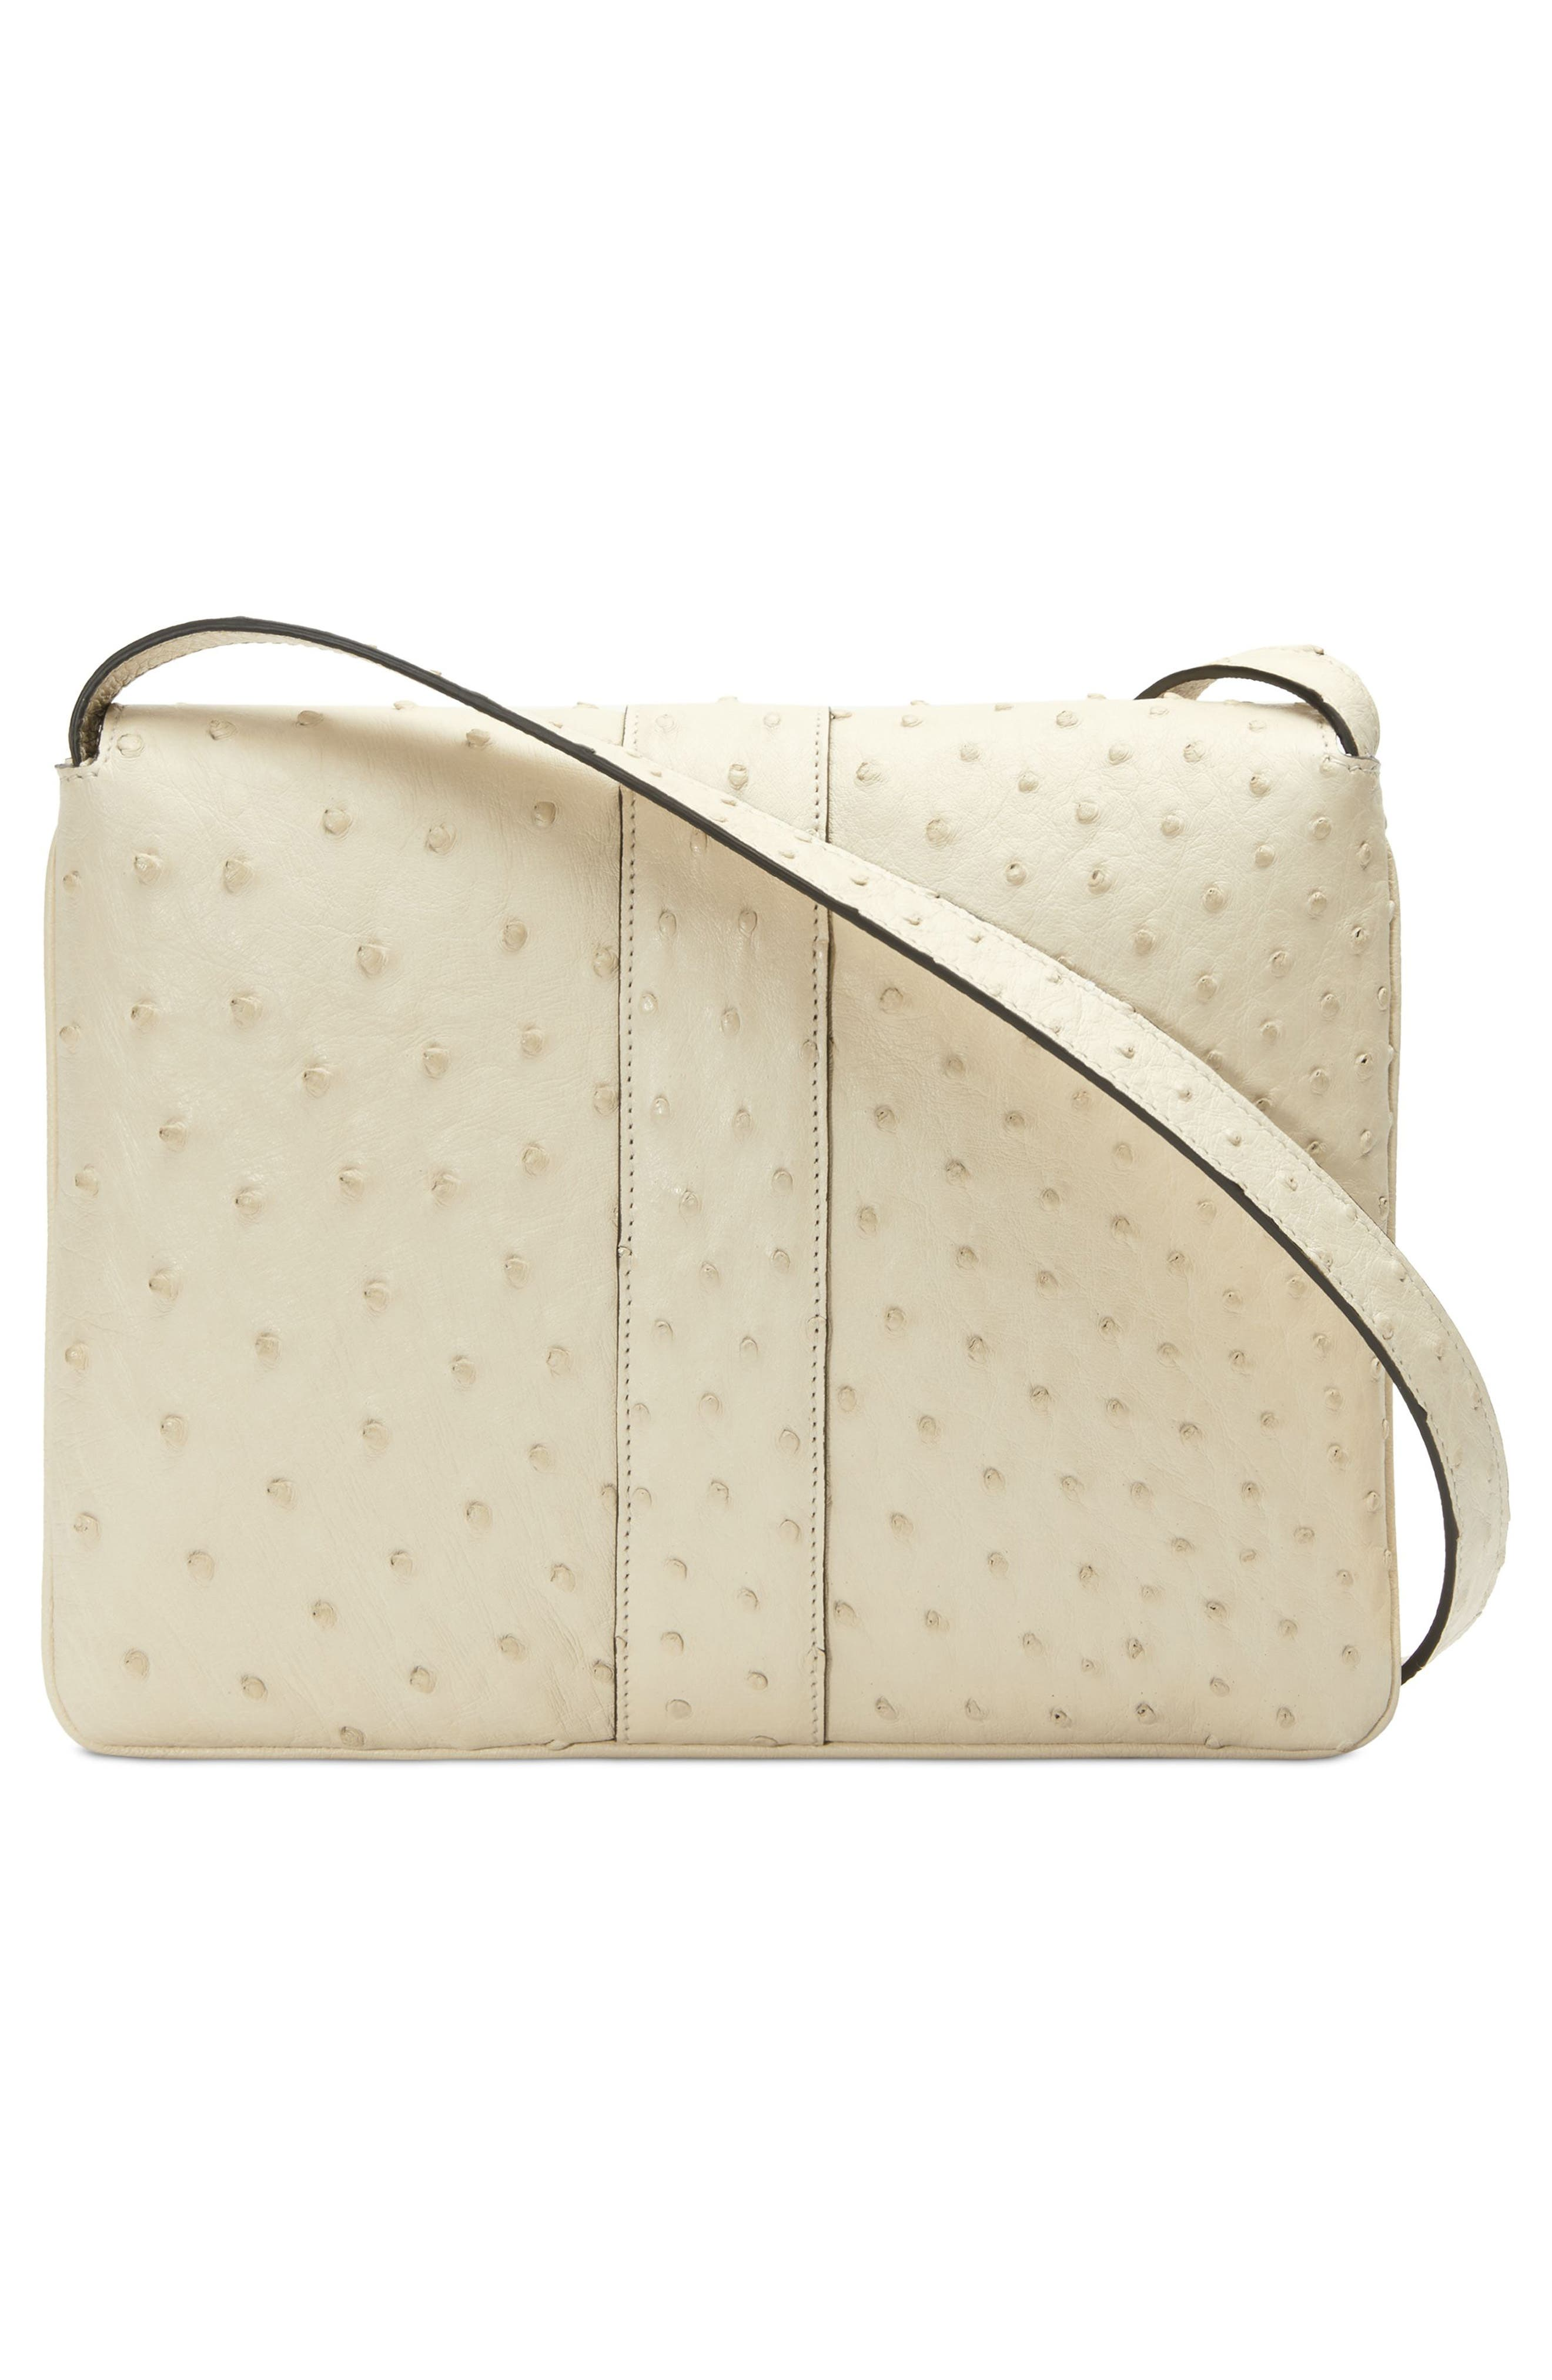 Medium Arli Ostrich Shoulder Bag,                             Alternate thumbnail 2, color,                             IVORY